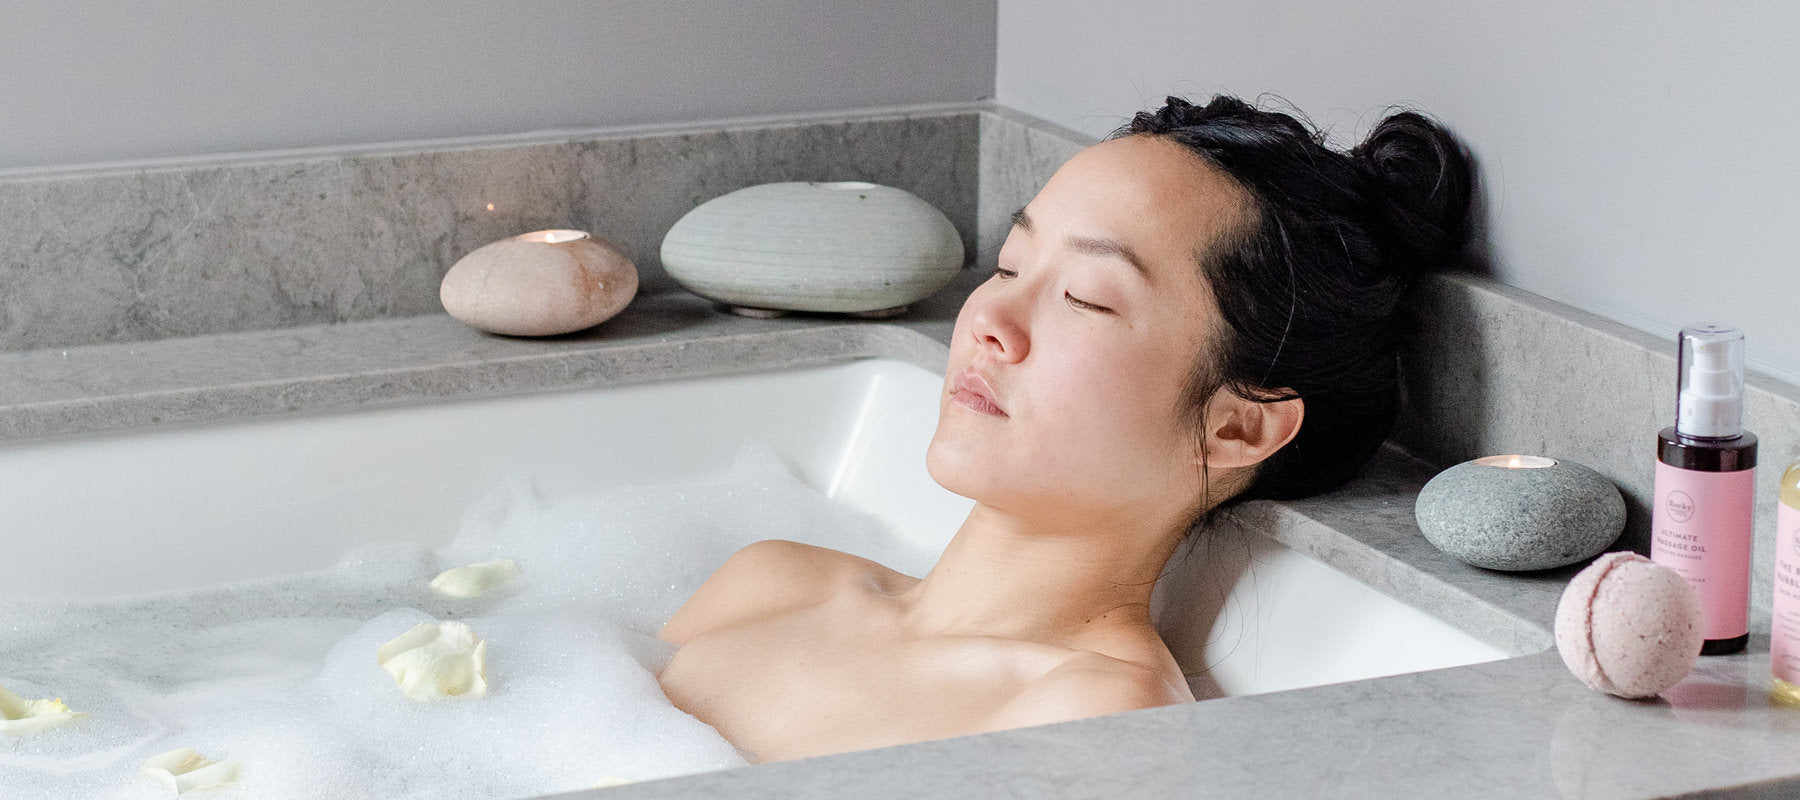 Woman lying in the bath with her eyes closed. There are all-natural sulfate free bubbles from Rocky Mountain Soap Company, a bath bomb and massage oil on the side of the tub.